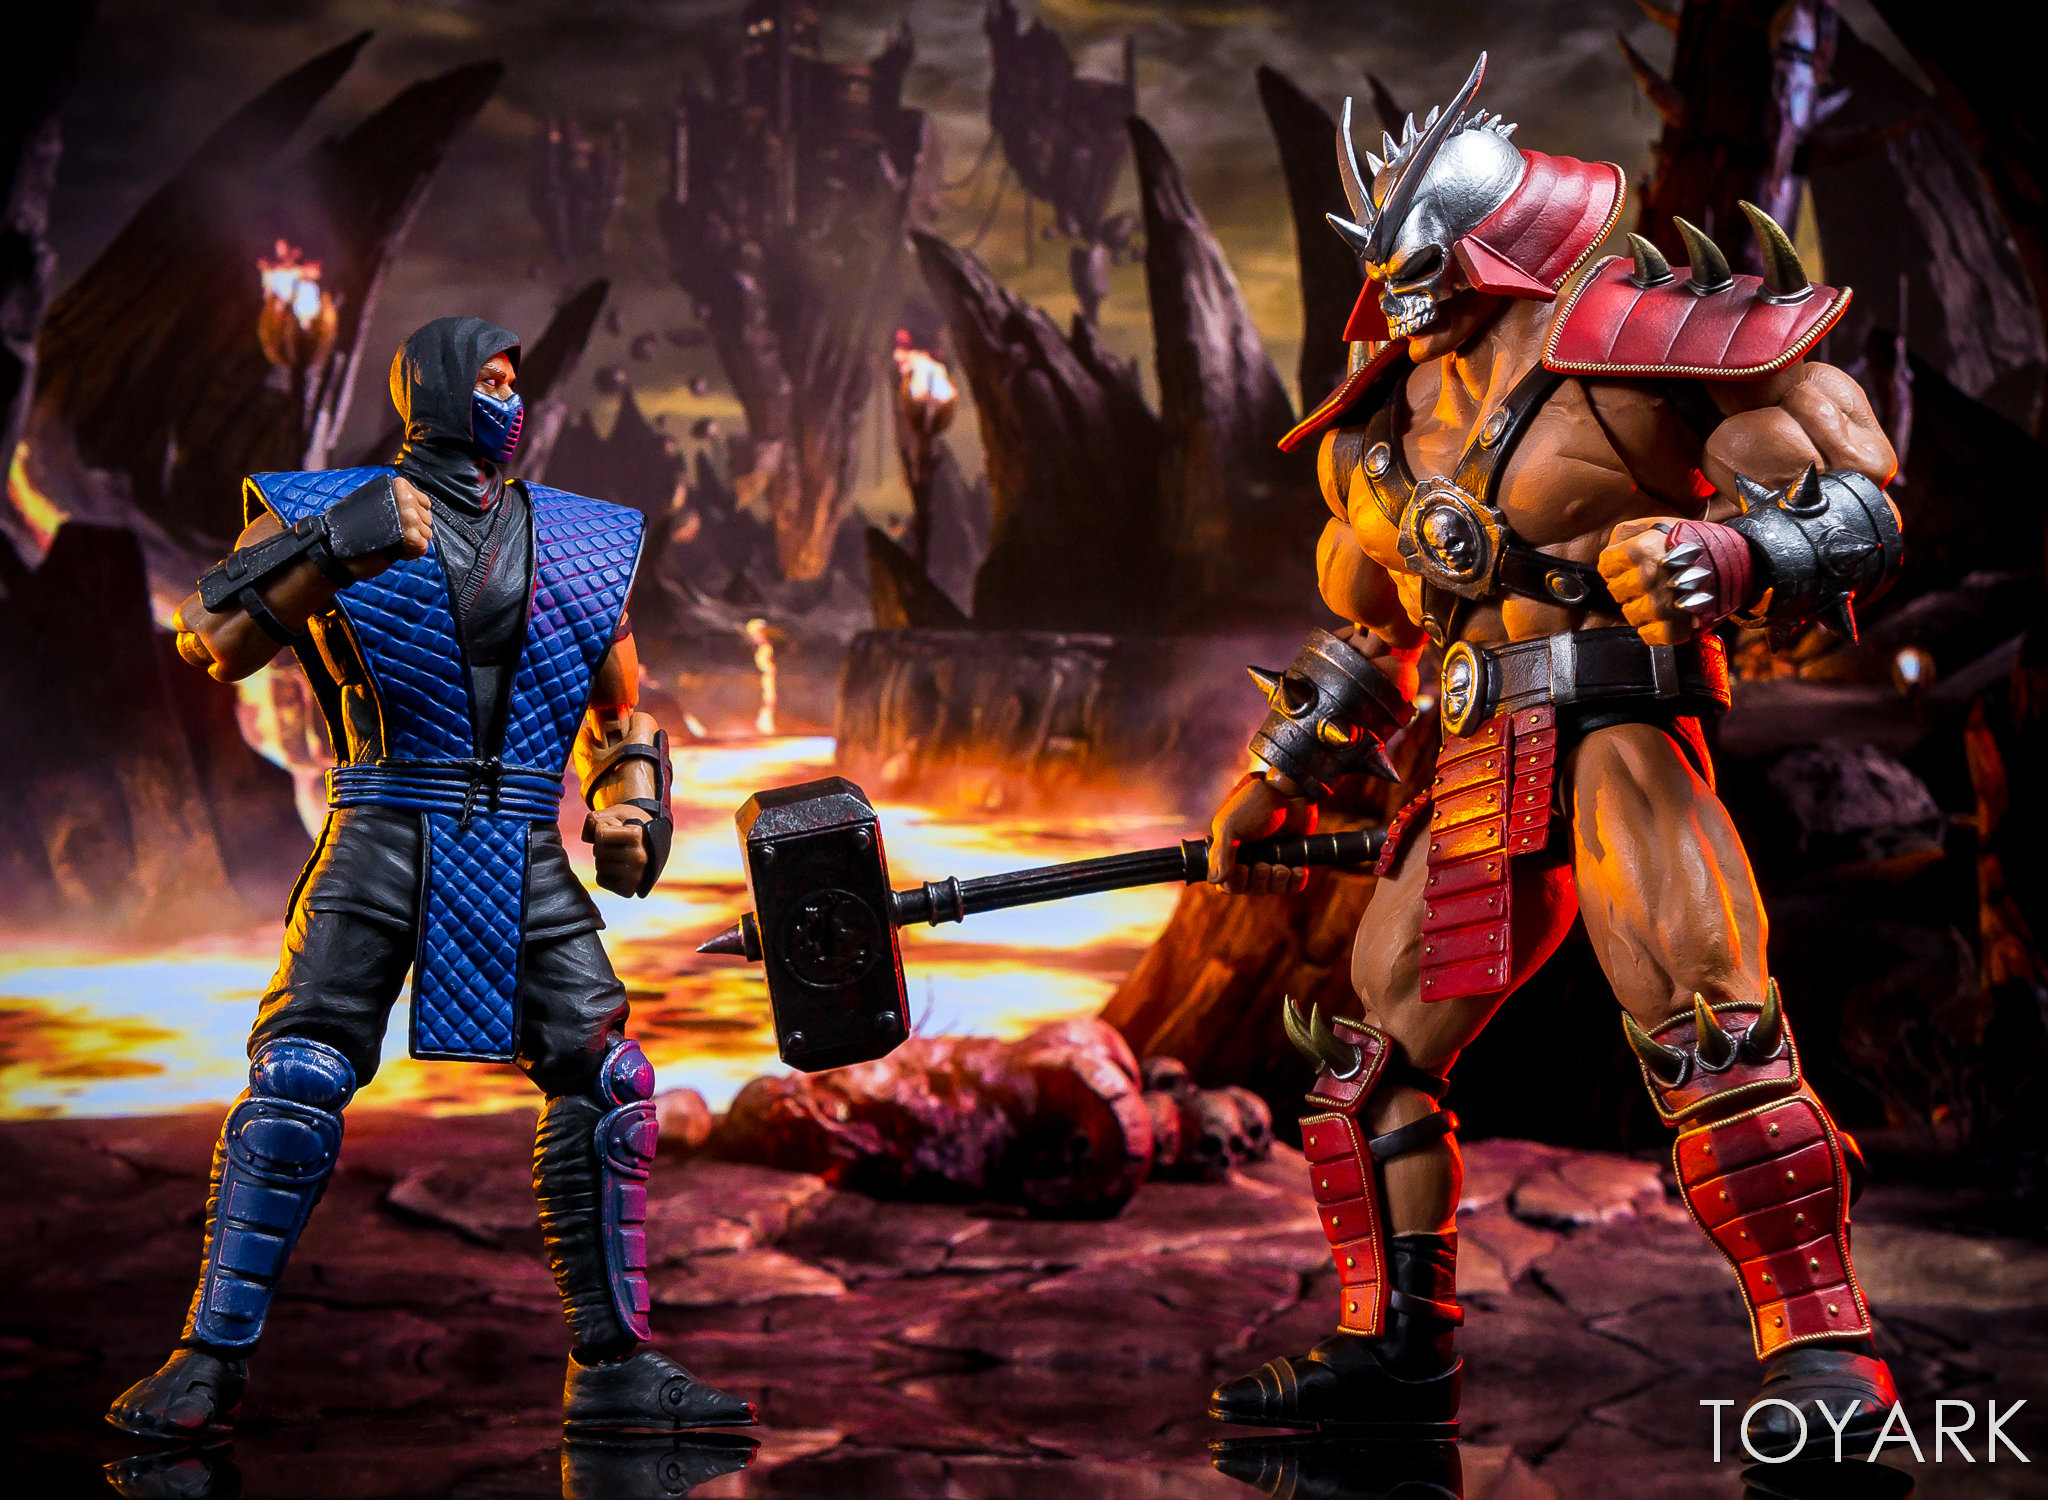 https://news.toyark.com/wp-content/uploads/sites/4/2018/06/Storm-Mortal-Kombat-Shao-Kahn-Figure-035.jpg